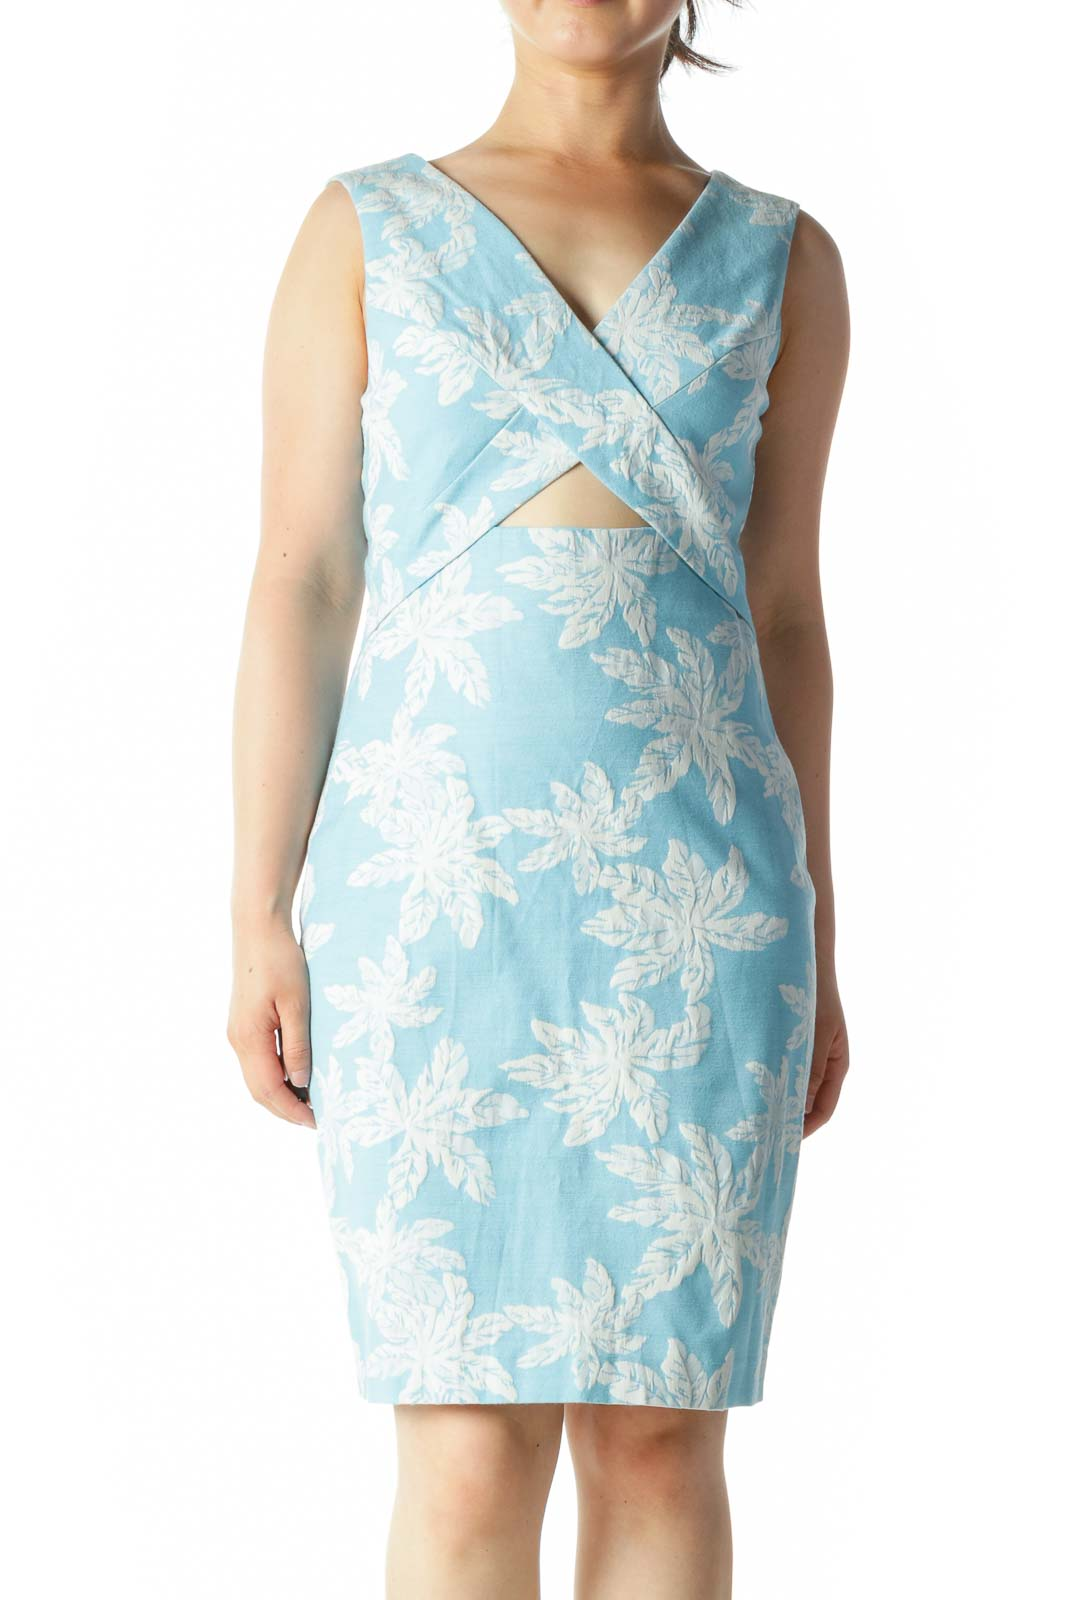 Blue White Jacquard Floral-Texture V-Neck Front Cut Out Day Dress Front